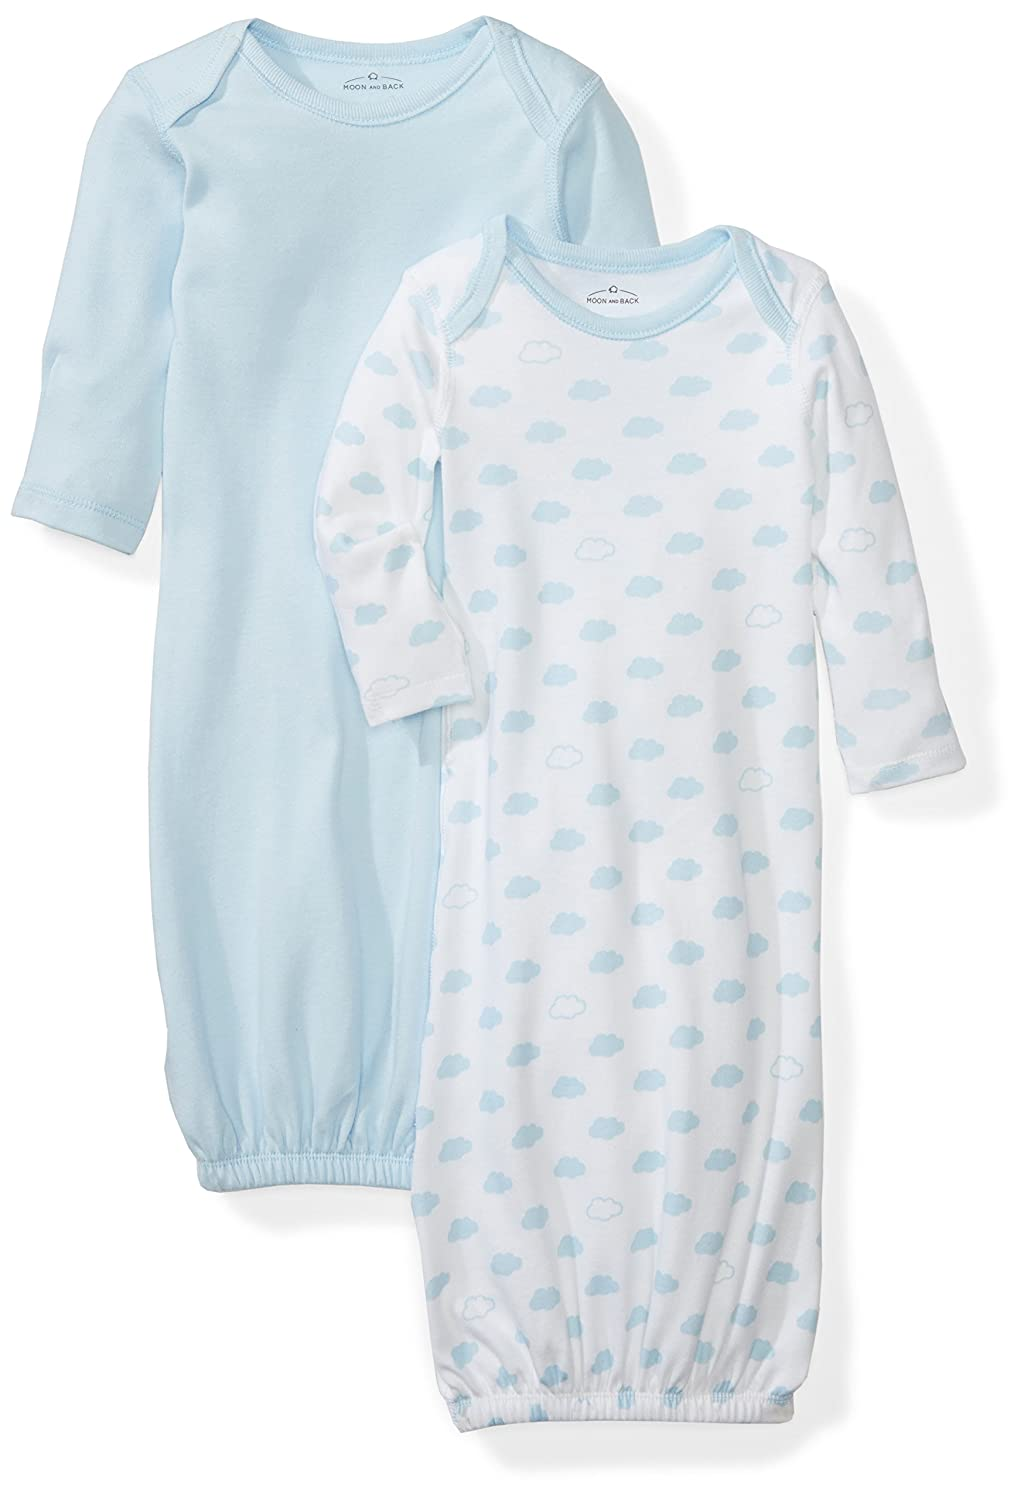 Amazon.com: Moon and Back Baby Set of 2 Organic Sleeper Gowns, Blue ...